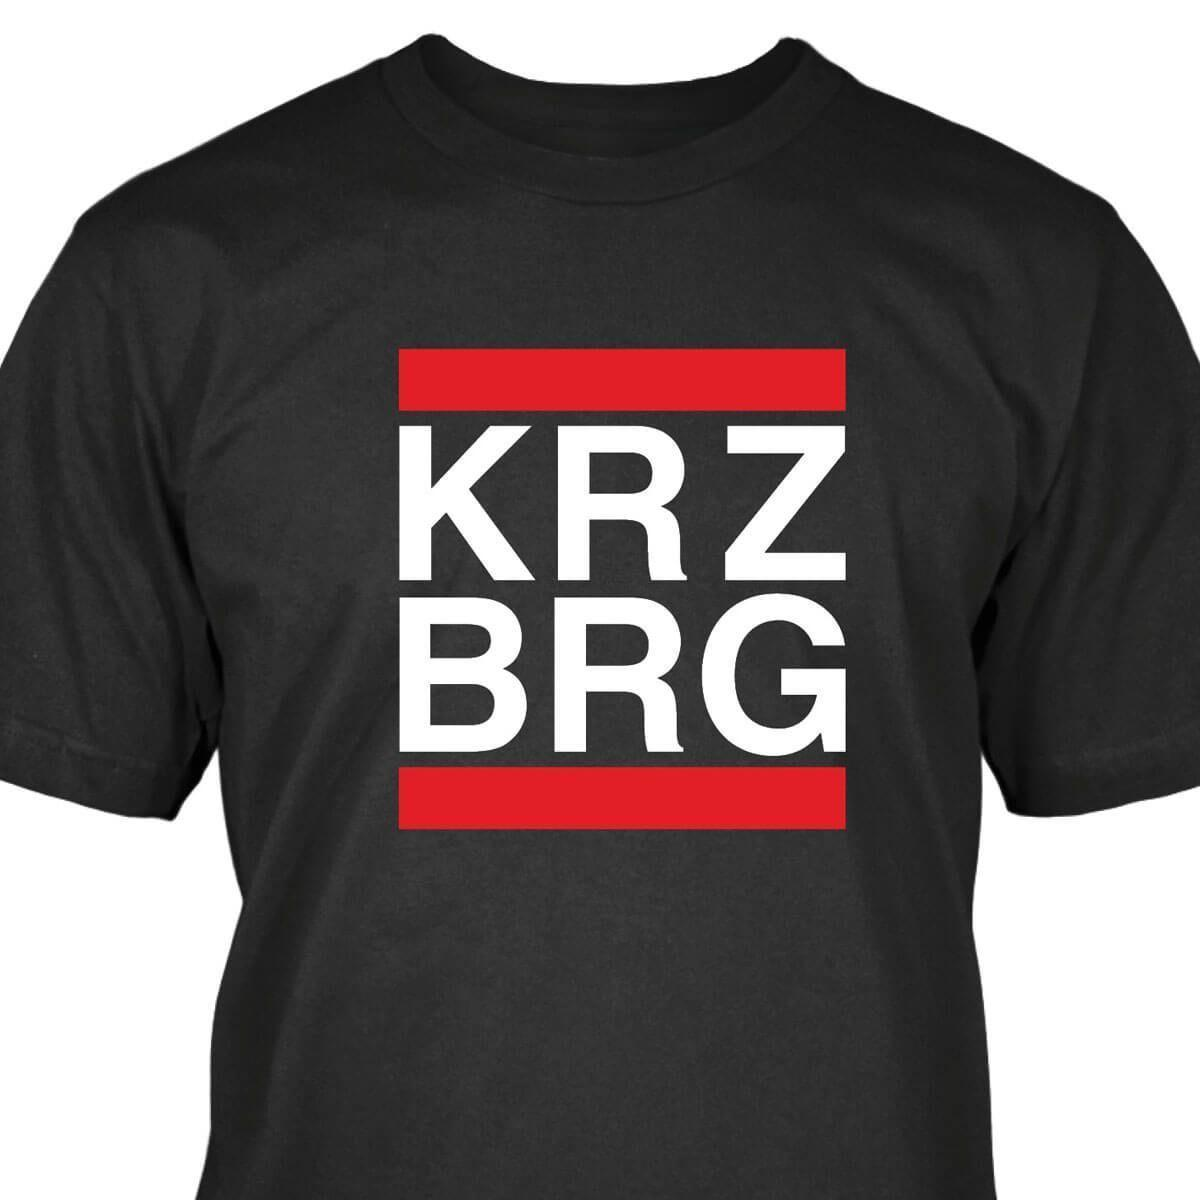 b0d33695 Kreuzberg T Shirt Mens 2018 Fashion Brand T Shirt O Neck 100%cotton T Shirt  Tops Tee Custom Environmental Printed Tshirt Male Hip Hop Funny Cheap Tee  Shirts ...